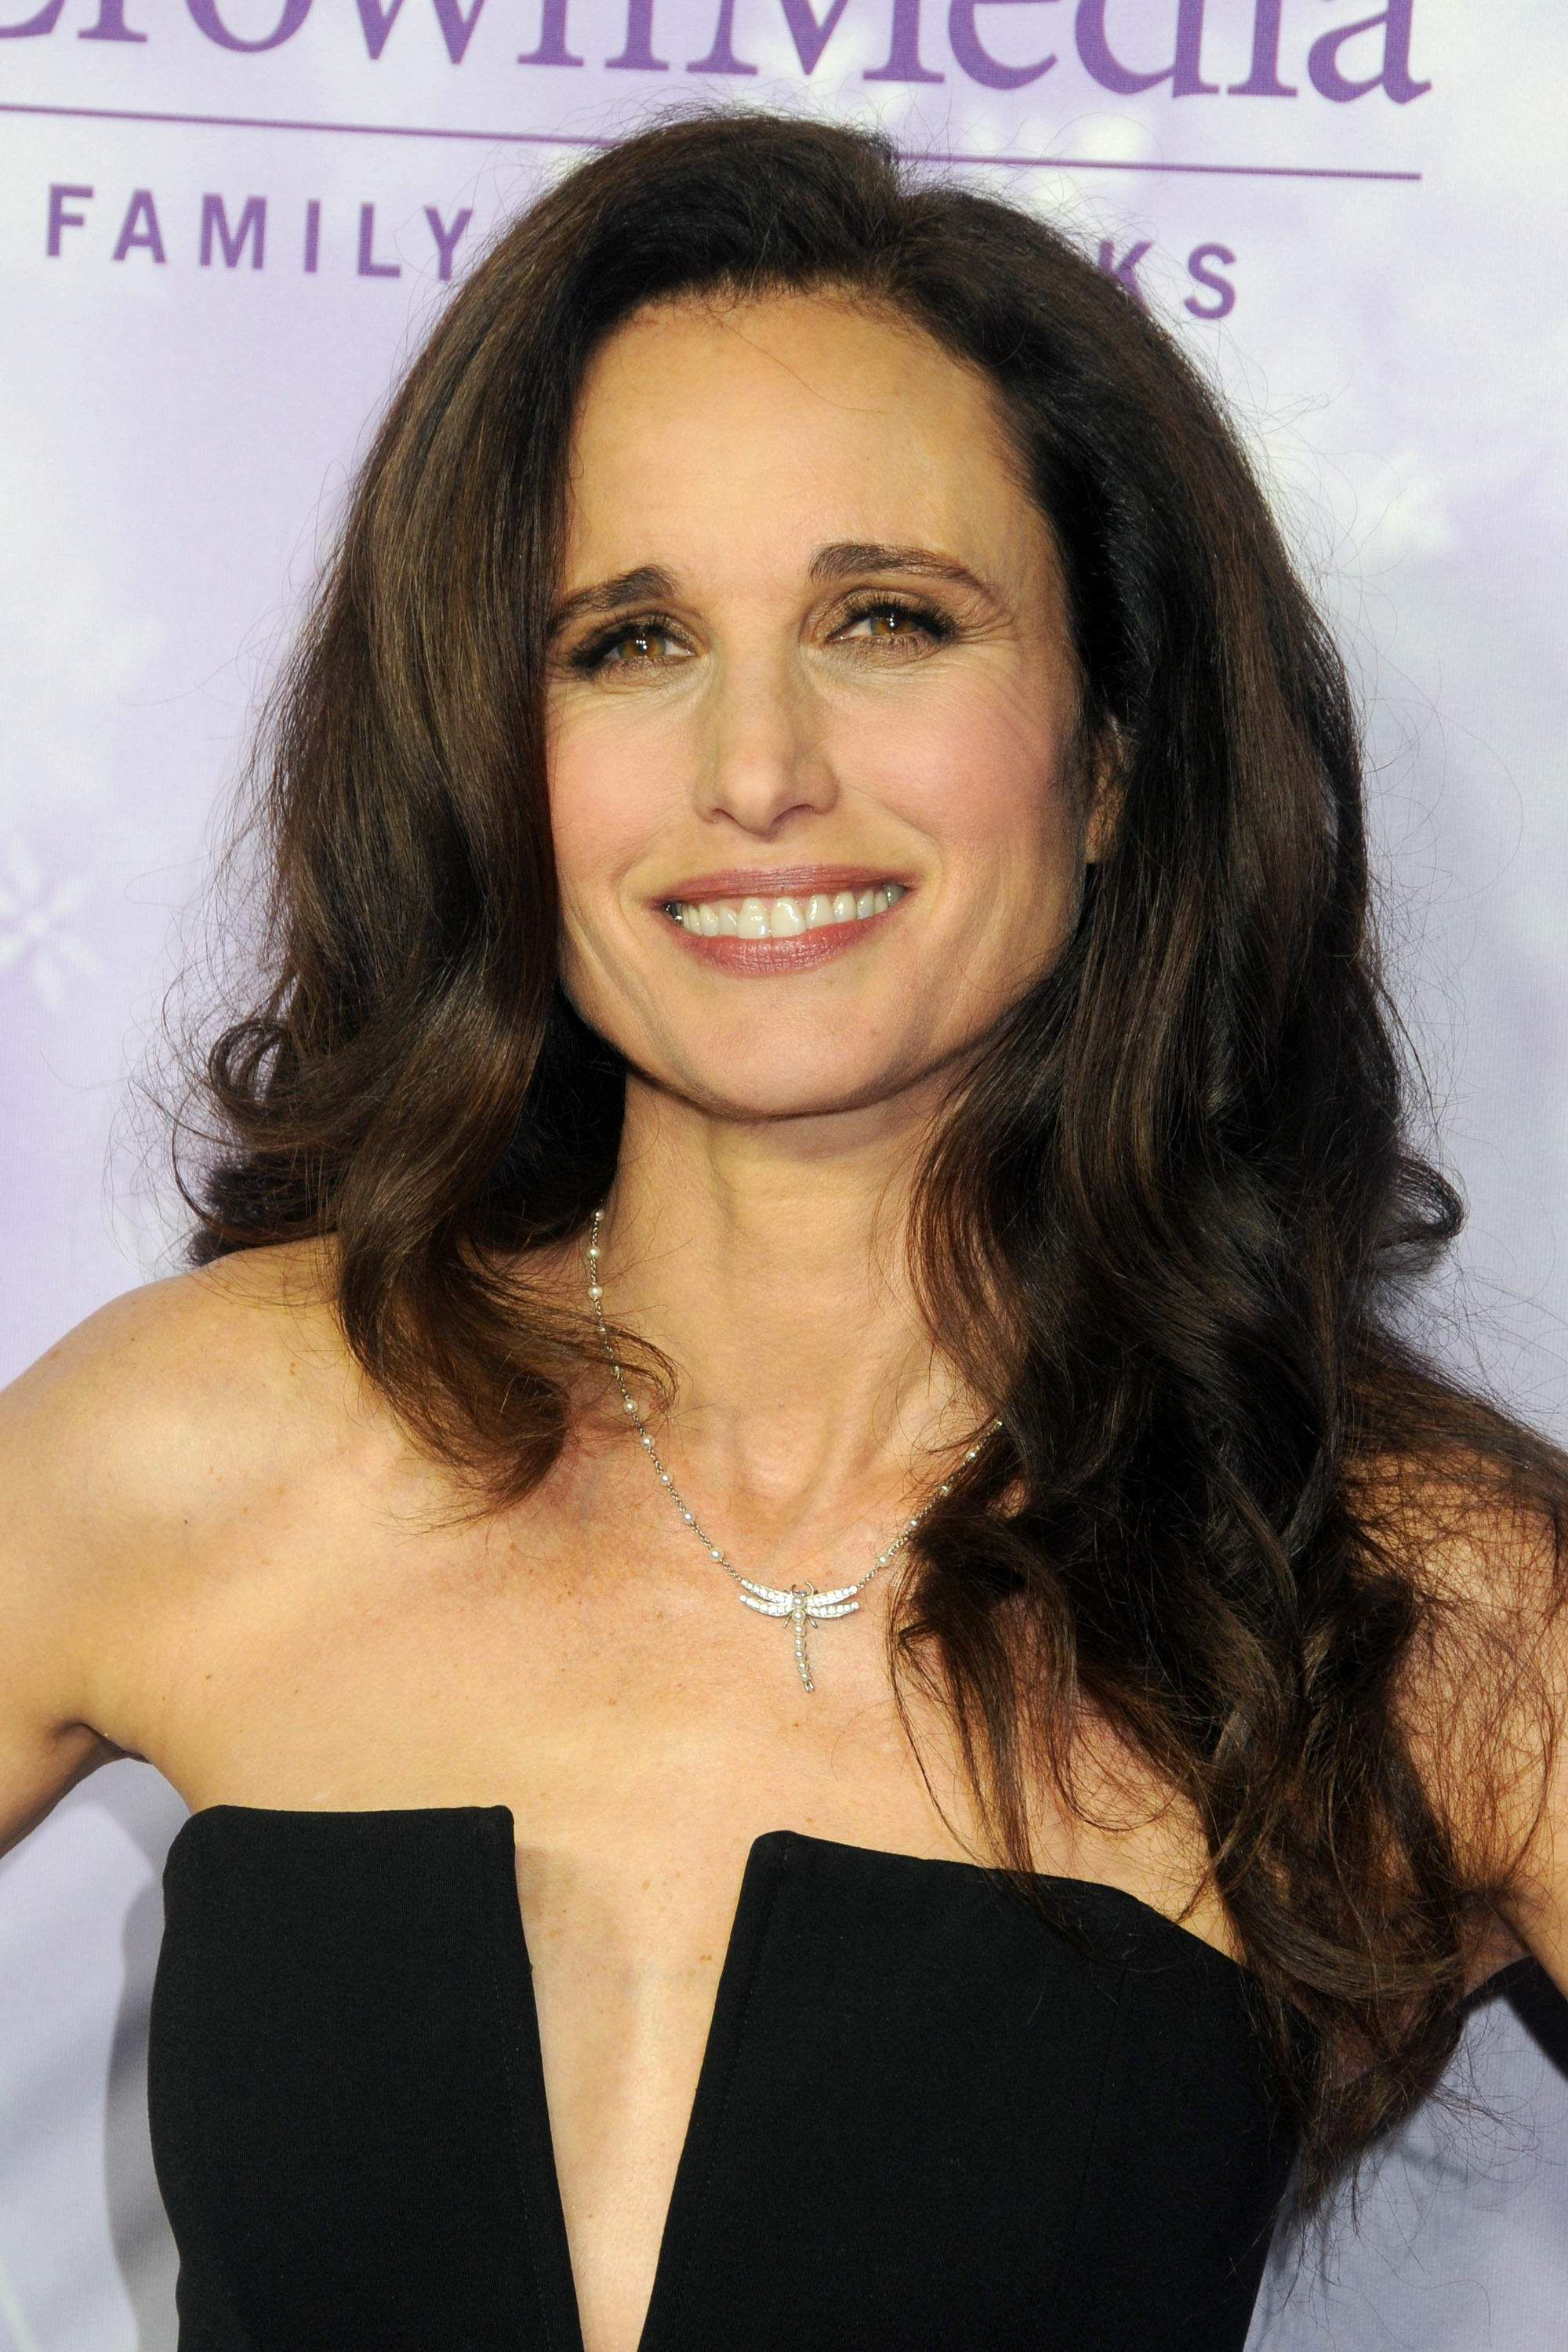 Celebrites Andie MacDowell nude (41 photo), Topless, Sideboobs, Feet, cameltoe 2006